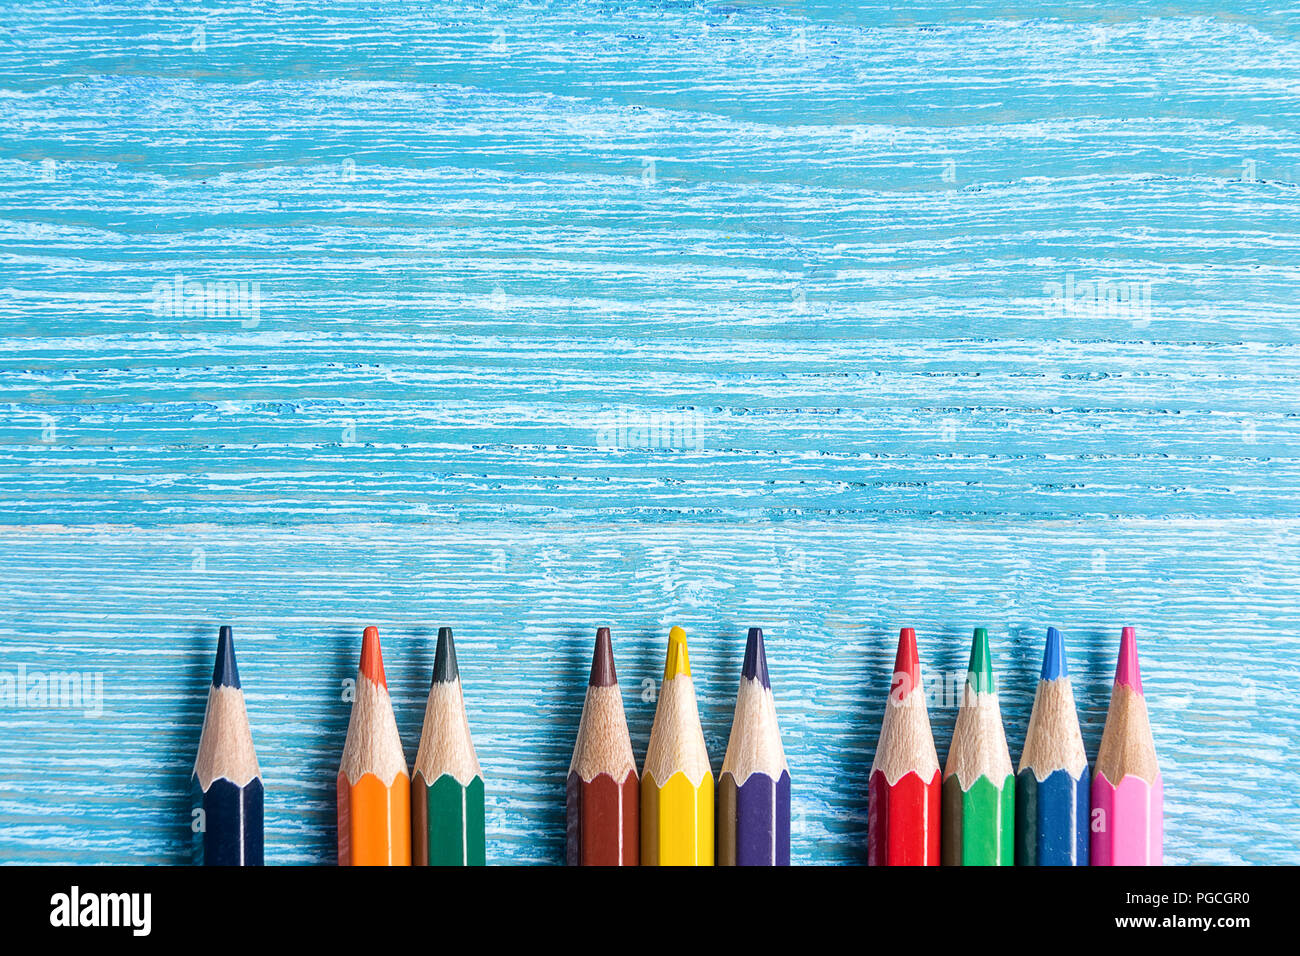 Back to school concept - pencils, rulers and wooden background - Stock Image